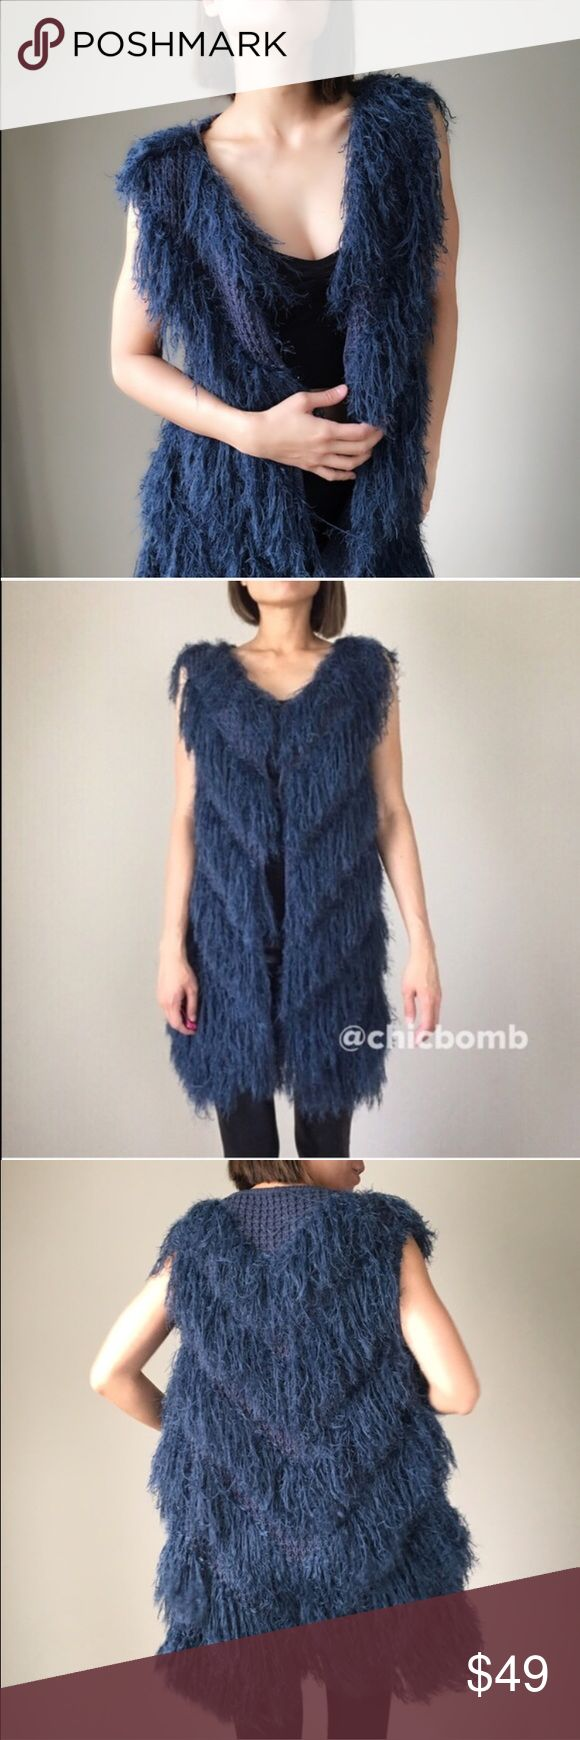 """Long faux fur Fringe shaggy outerwear. NEW YEAR Celebrate the NEW YEAR 2017 with this shaggy piece. Sleeveless Shaggy cardigan in dark BLU teal. FALL FASHION. 60% acrylic 20%nylon 20%polyblend. Size S - length:34"""", bust:34"""" w:34"""" Size M- LENGHT 34"""",bust:35"""",w:35. Size L: 35"""", b:36,w:36"""" . ❤️❤️❤❤️️👉🏼Follow me on  📸INSTAGRAM: @chic_bomb  and 💁🏻📘FACEBOOK: @thechicbomb❤️❤️❤️❤️ CHICBOMB BOUTIQUE Jackets & Coats Vests"""